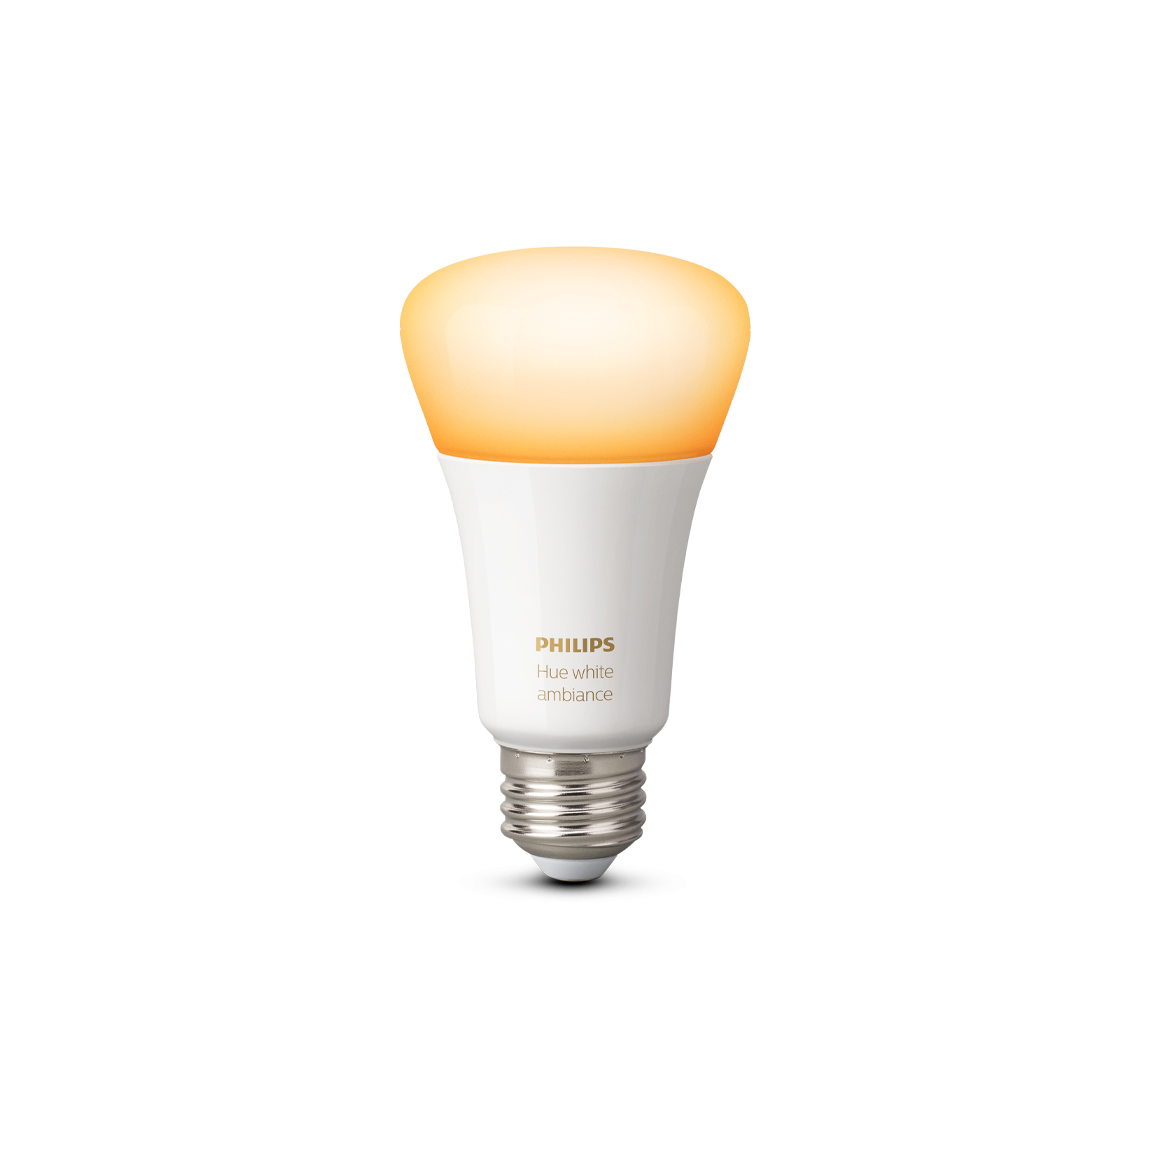 Philips Hue White Ambiance E27 Bluetooth - LED-Lampe - Weiß